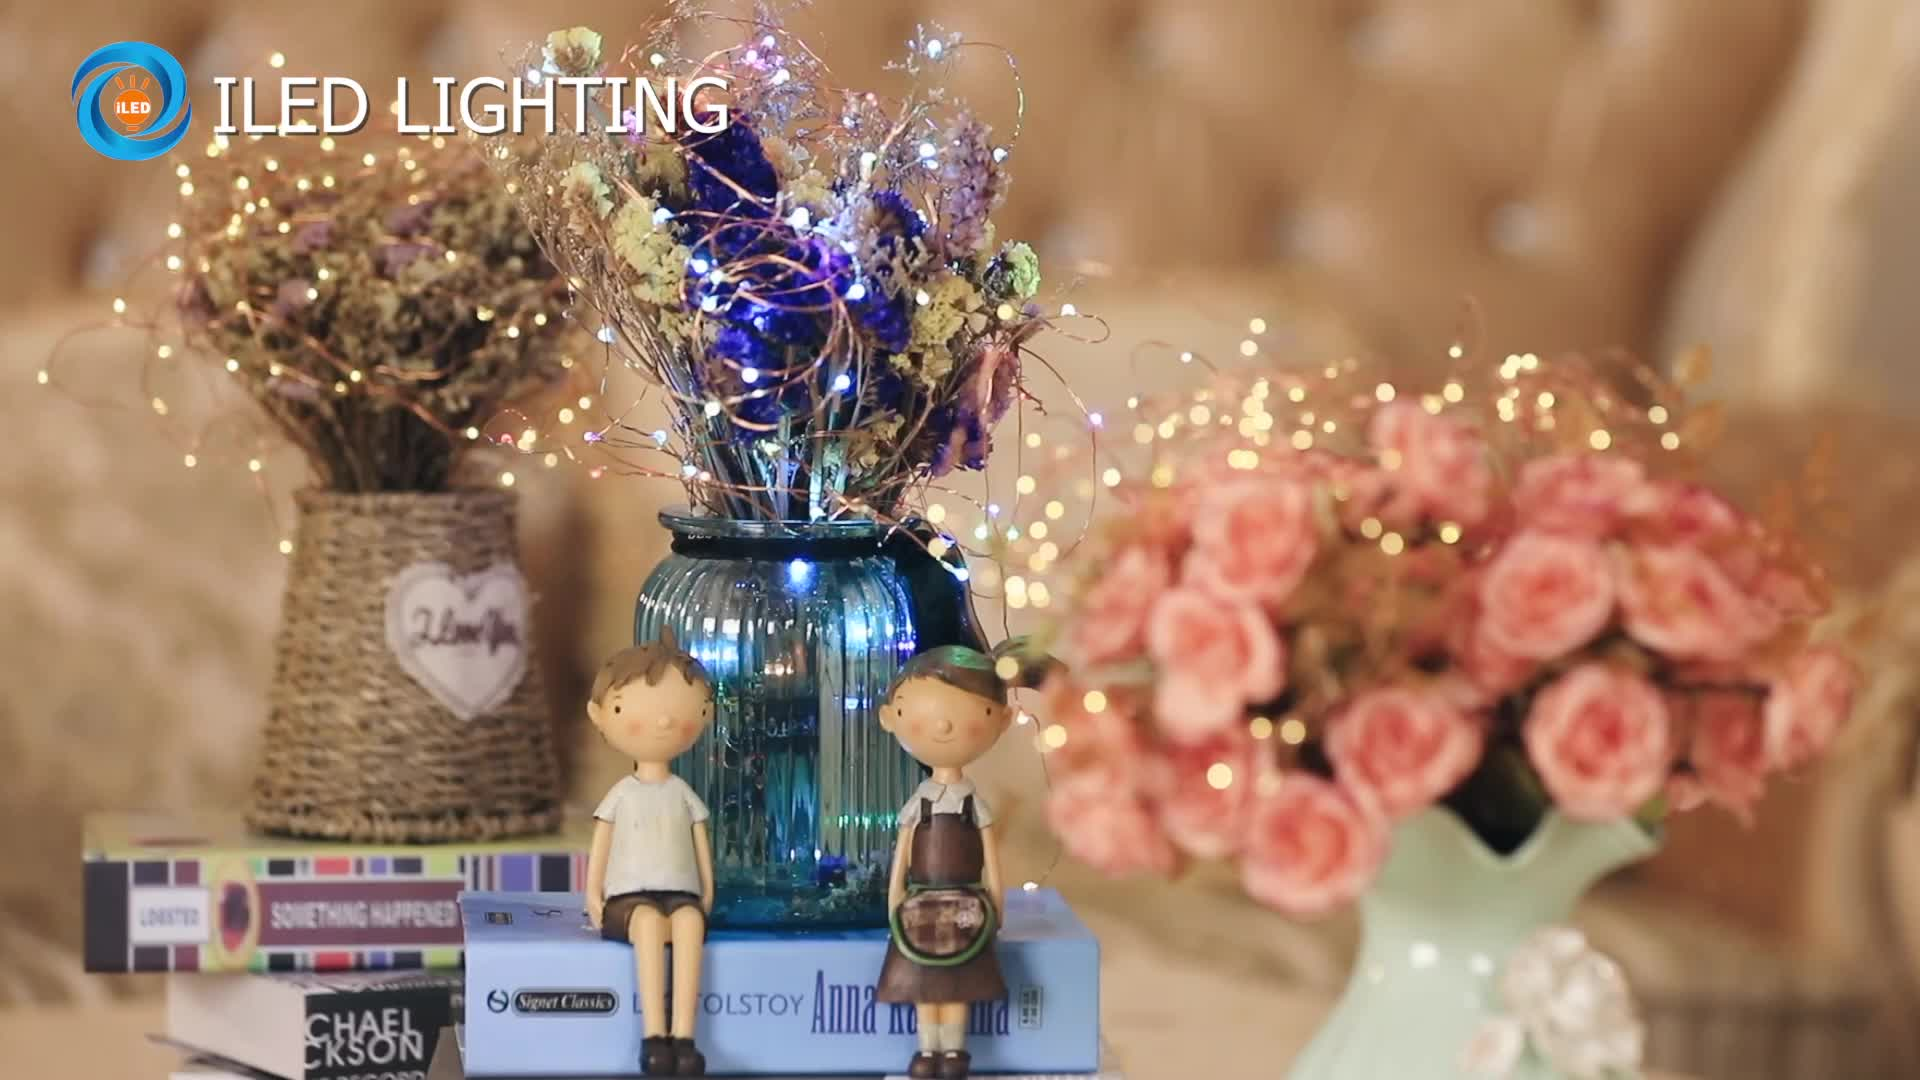 Copper Silver Wire Fairy Lights Low Voltage 10M 100leds LED String Light European US Plug Powered Decoration Lights